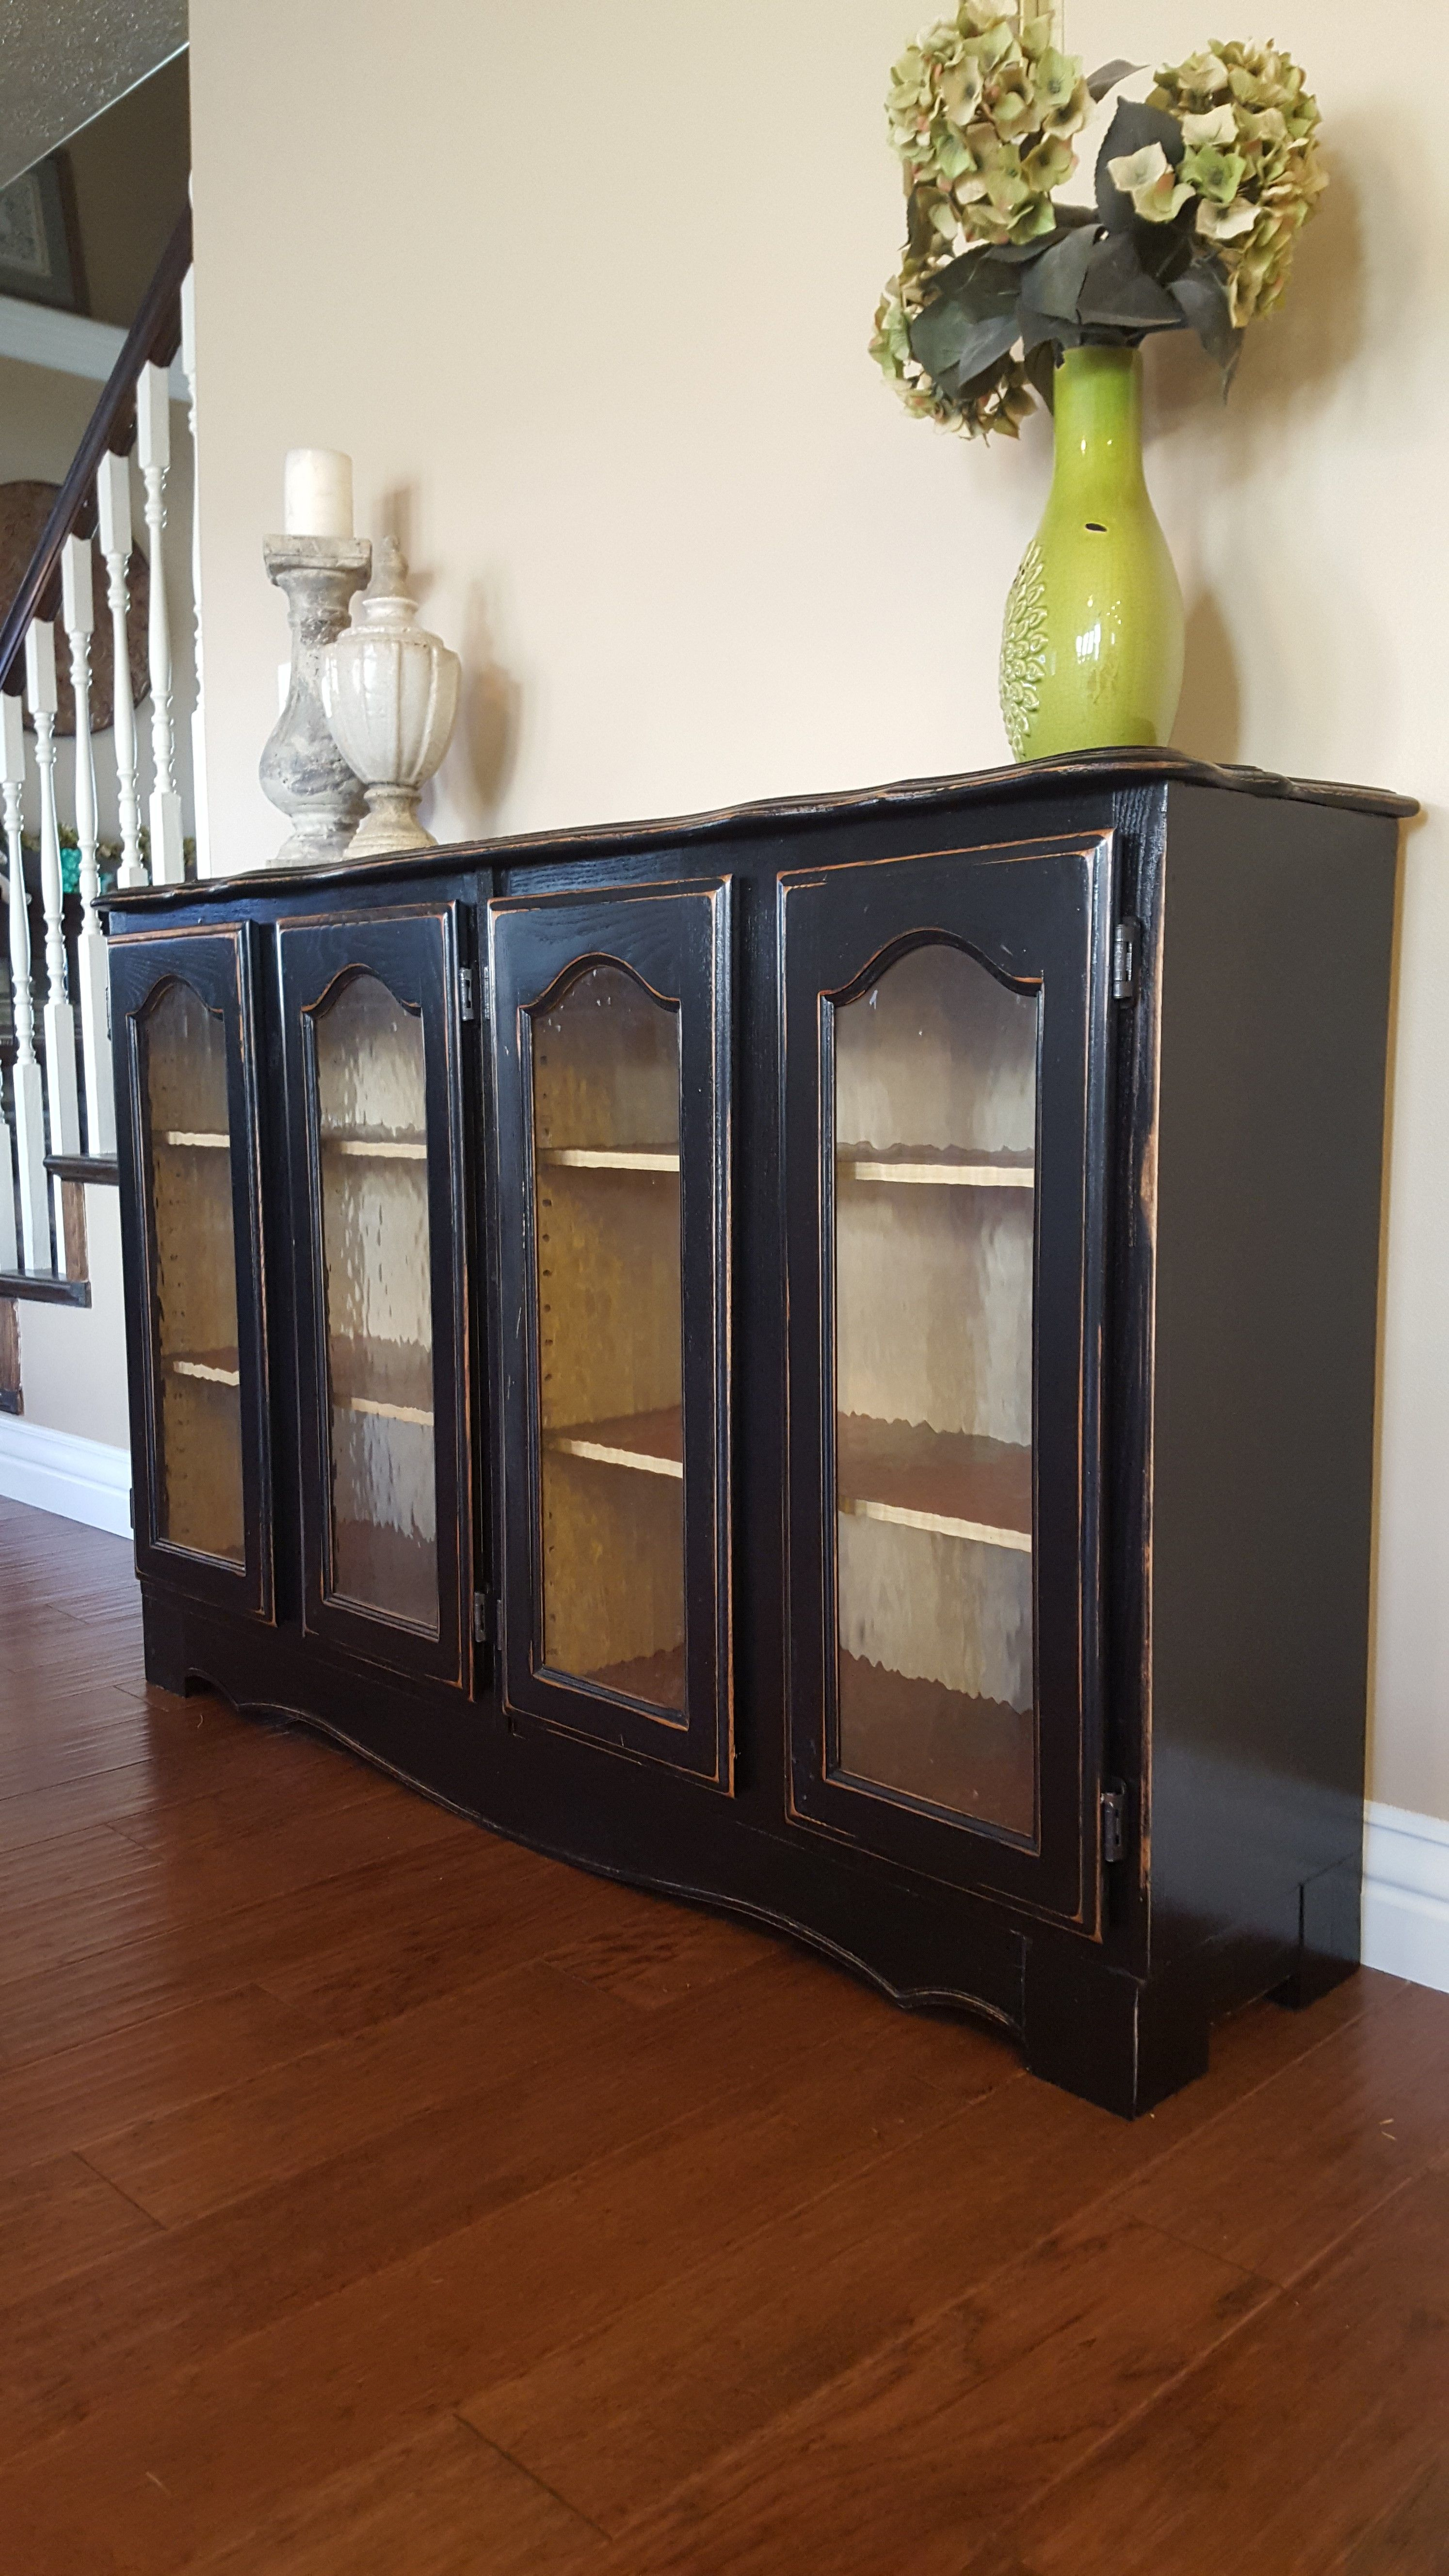 Up For Sale Is A Beautiful Cabinet Buffet Oak Wood Painted Black And Slightly Distressed Has 4